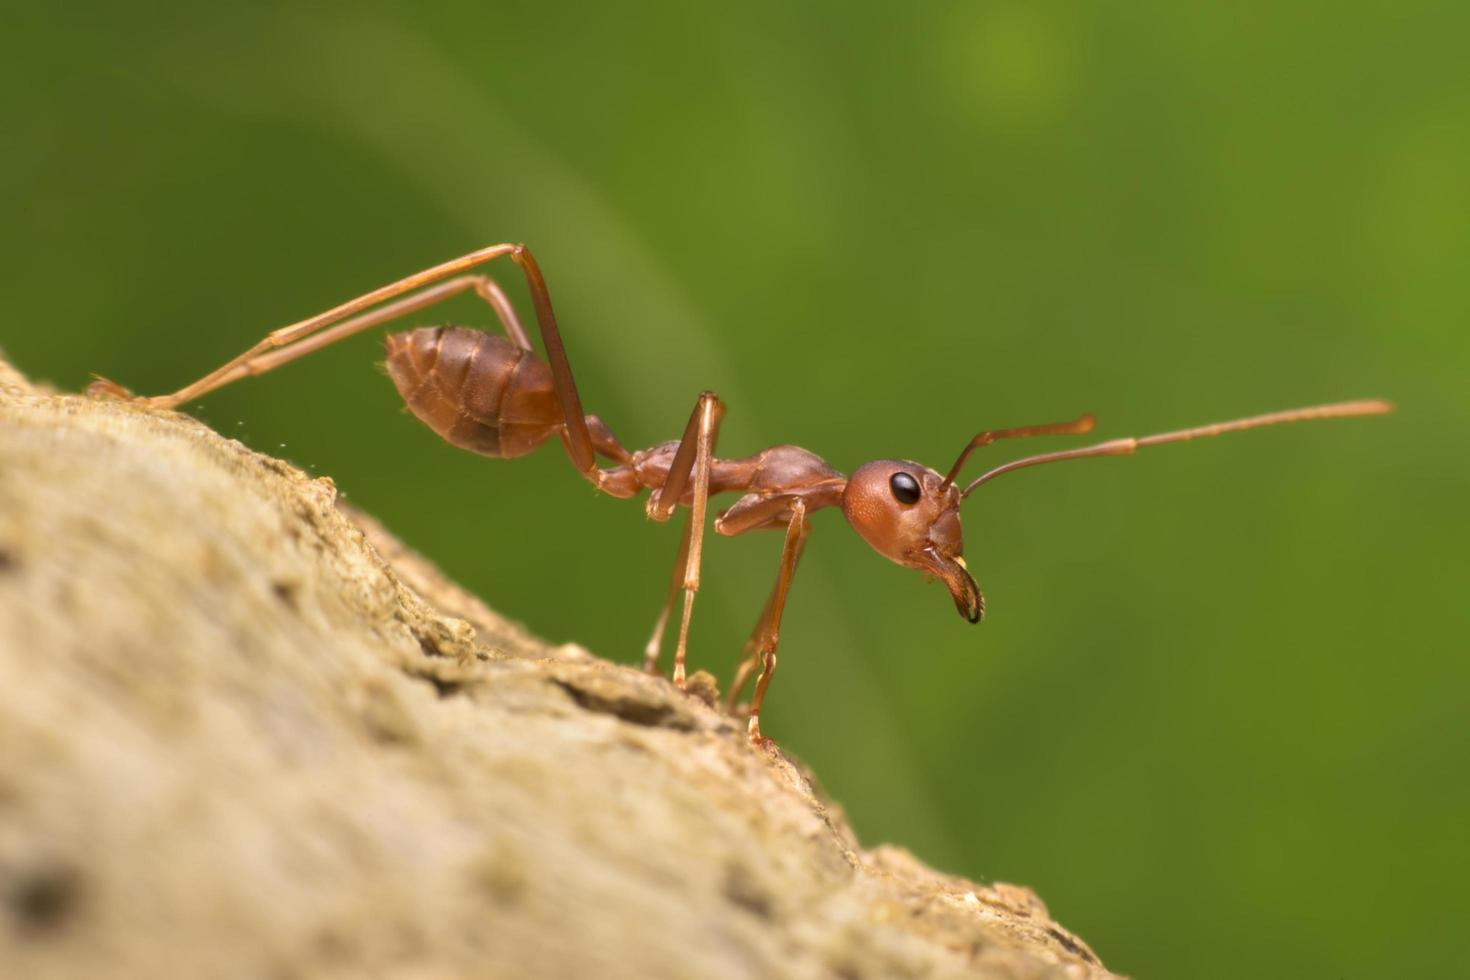 Red ant marches downward  photo